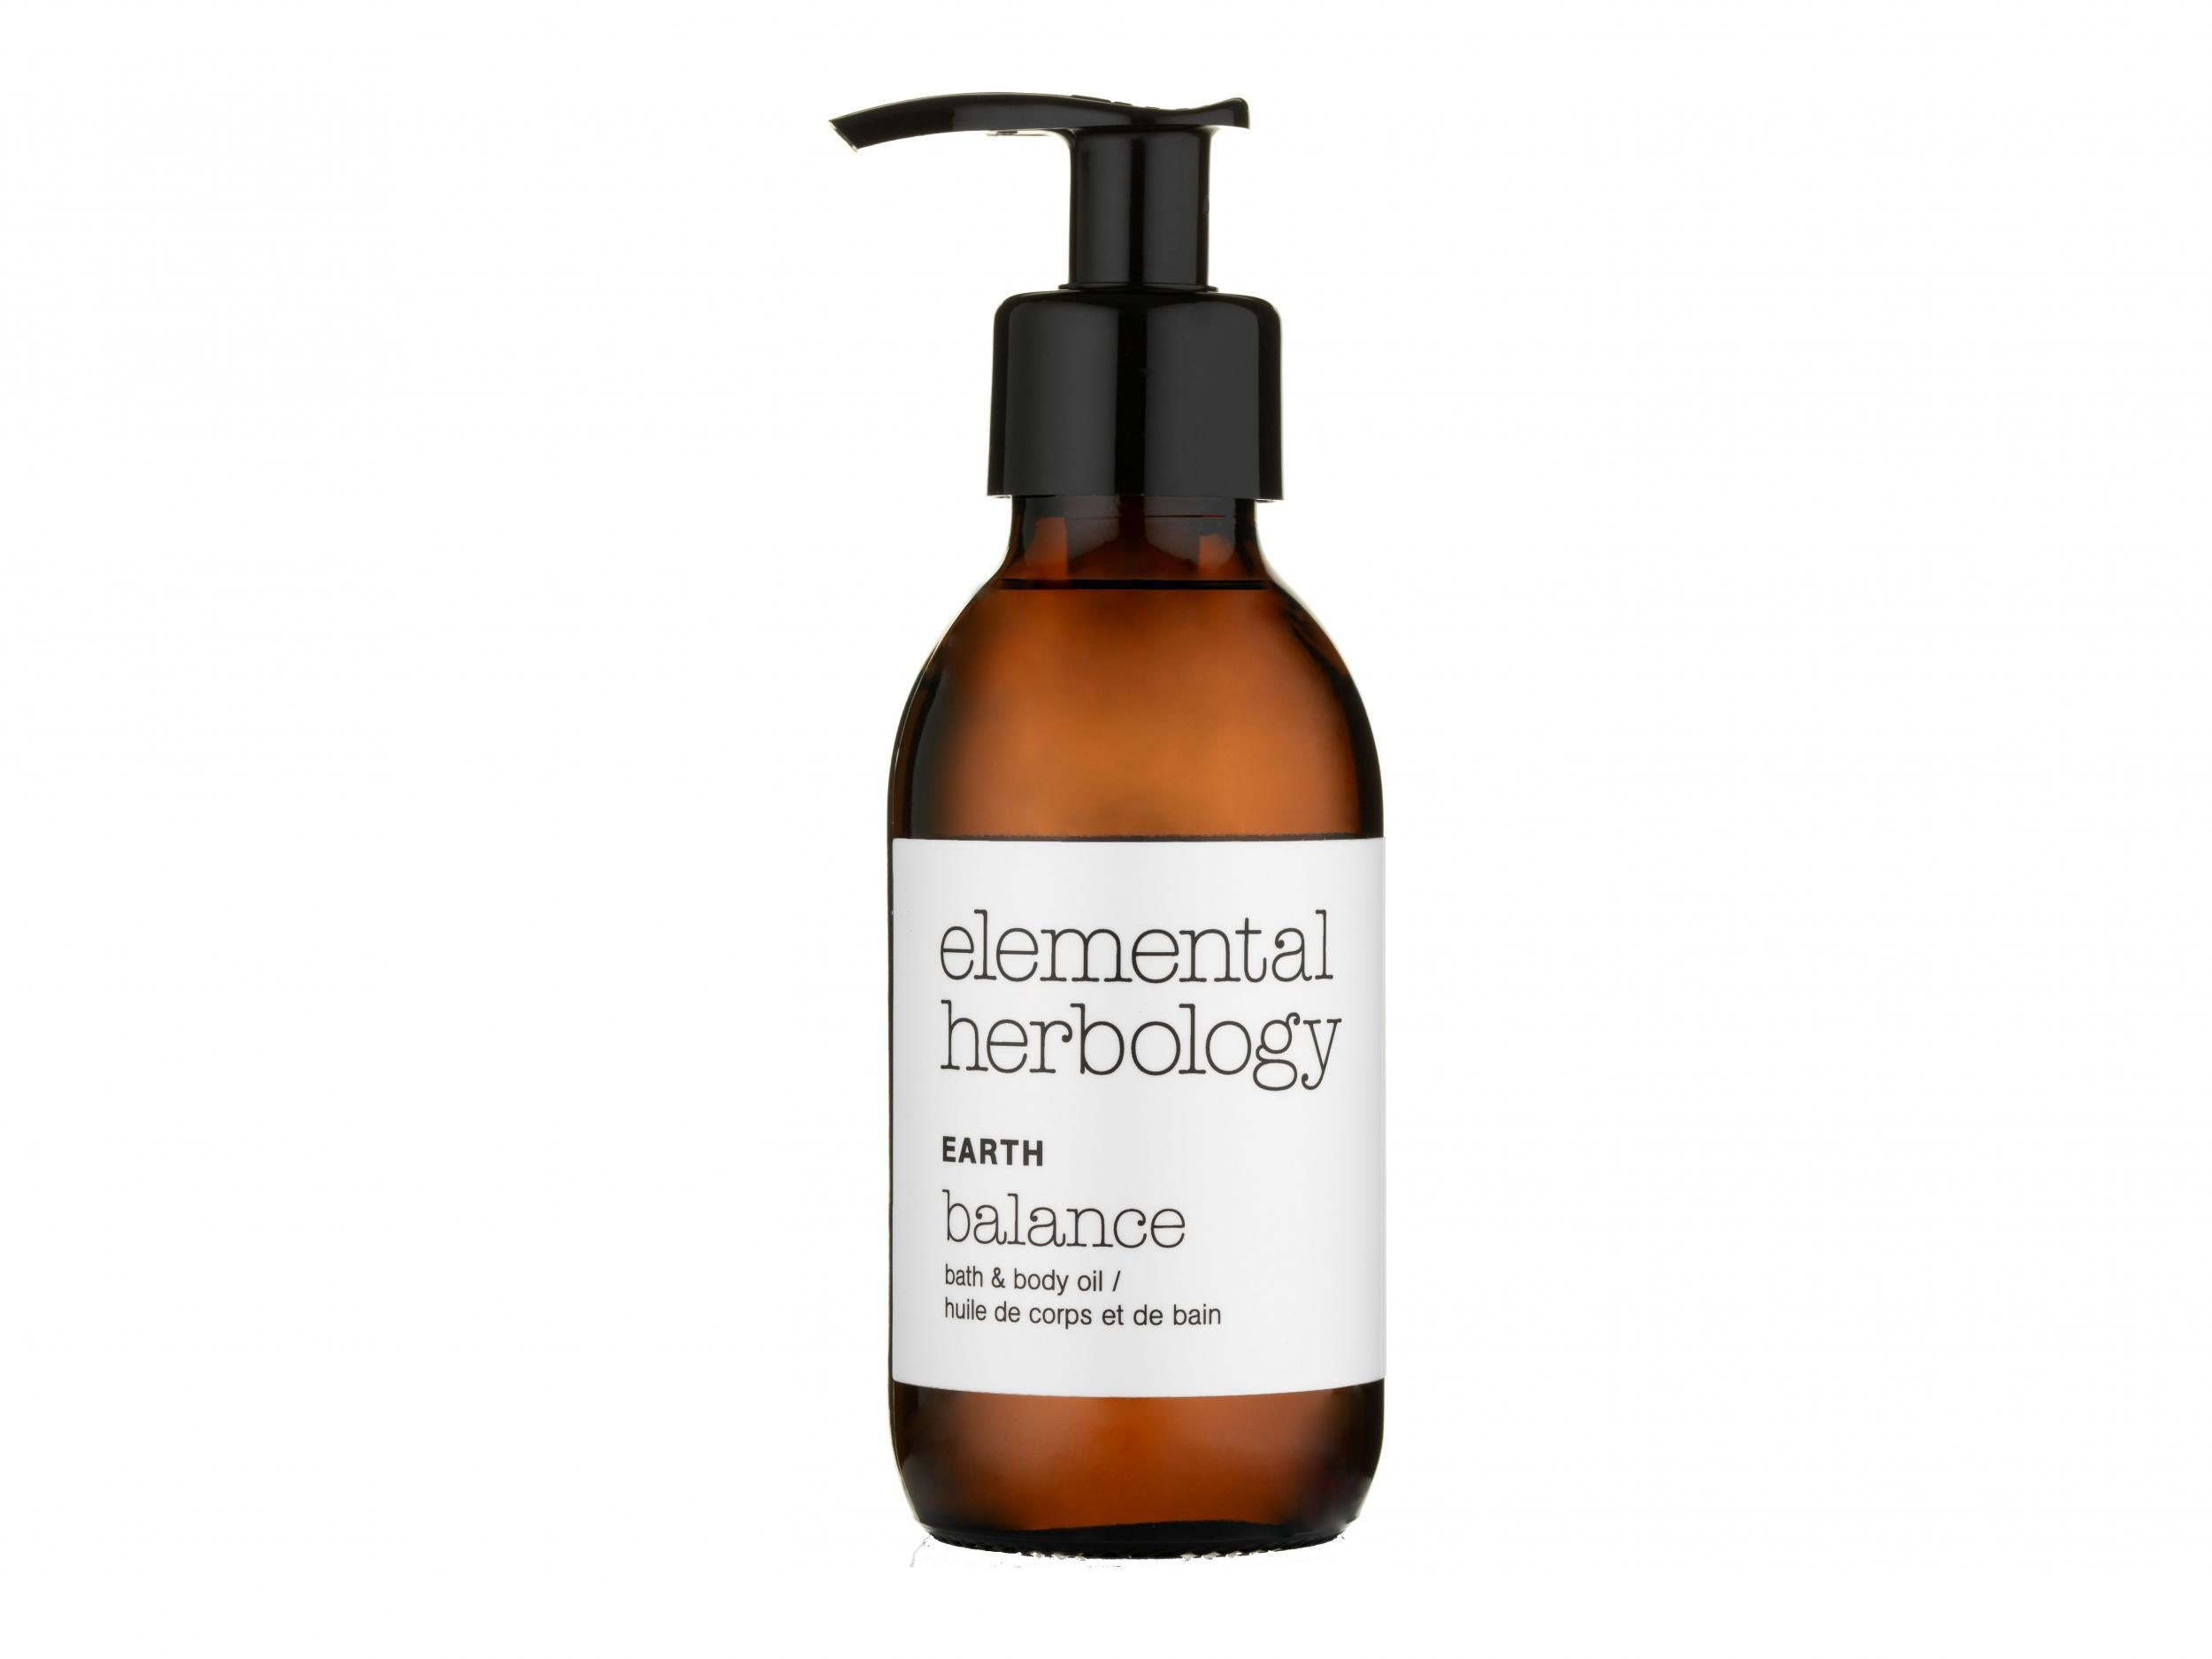 7 best bath oils | The Independent